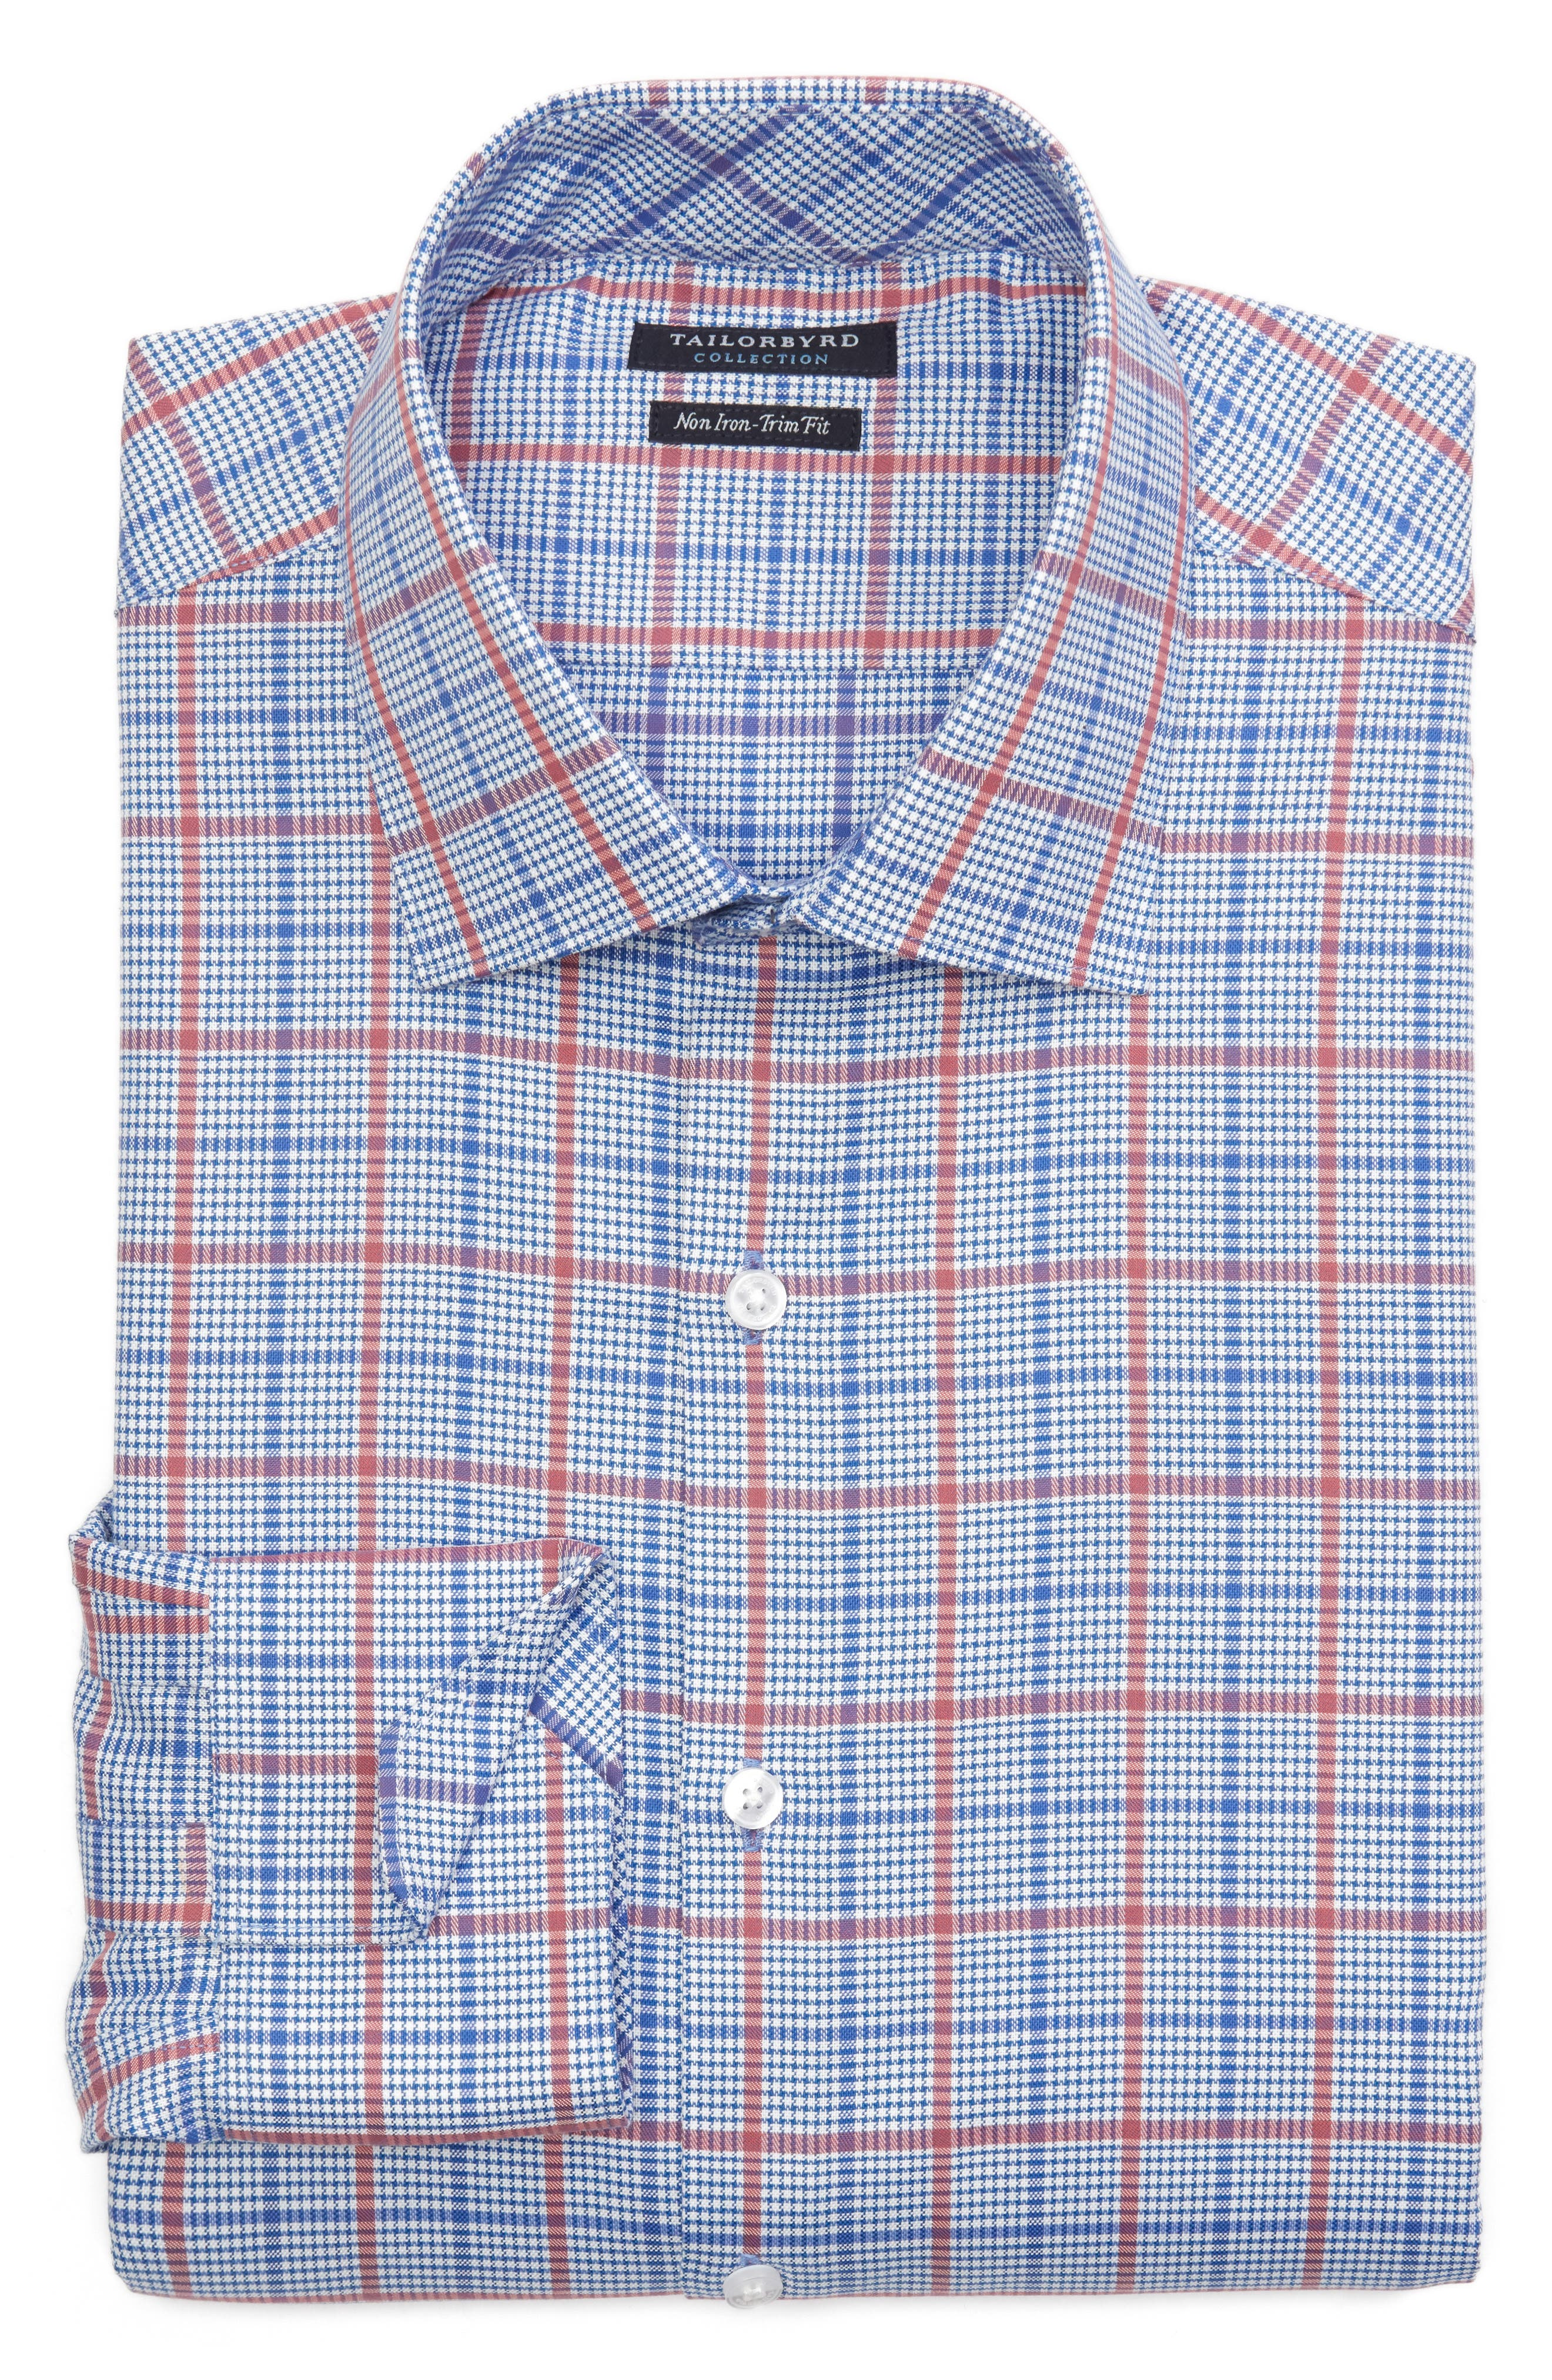 Kai Trim Fit Check Dress Shirt,                             Alternate thumbnail 6, color,                             Red/ Blue